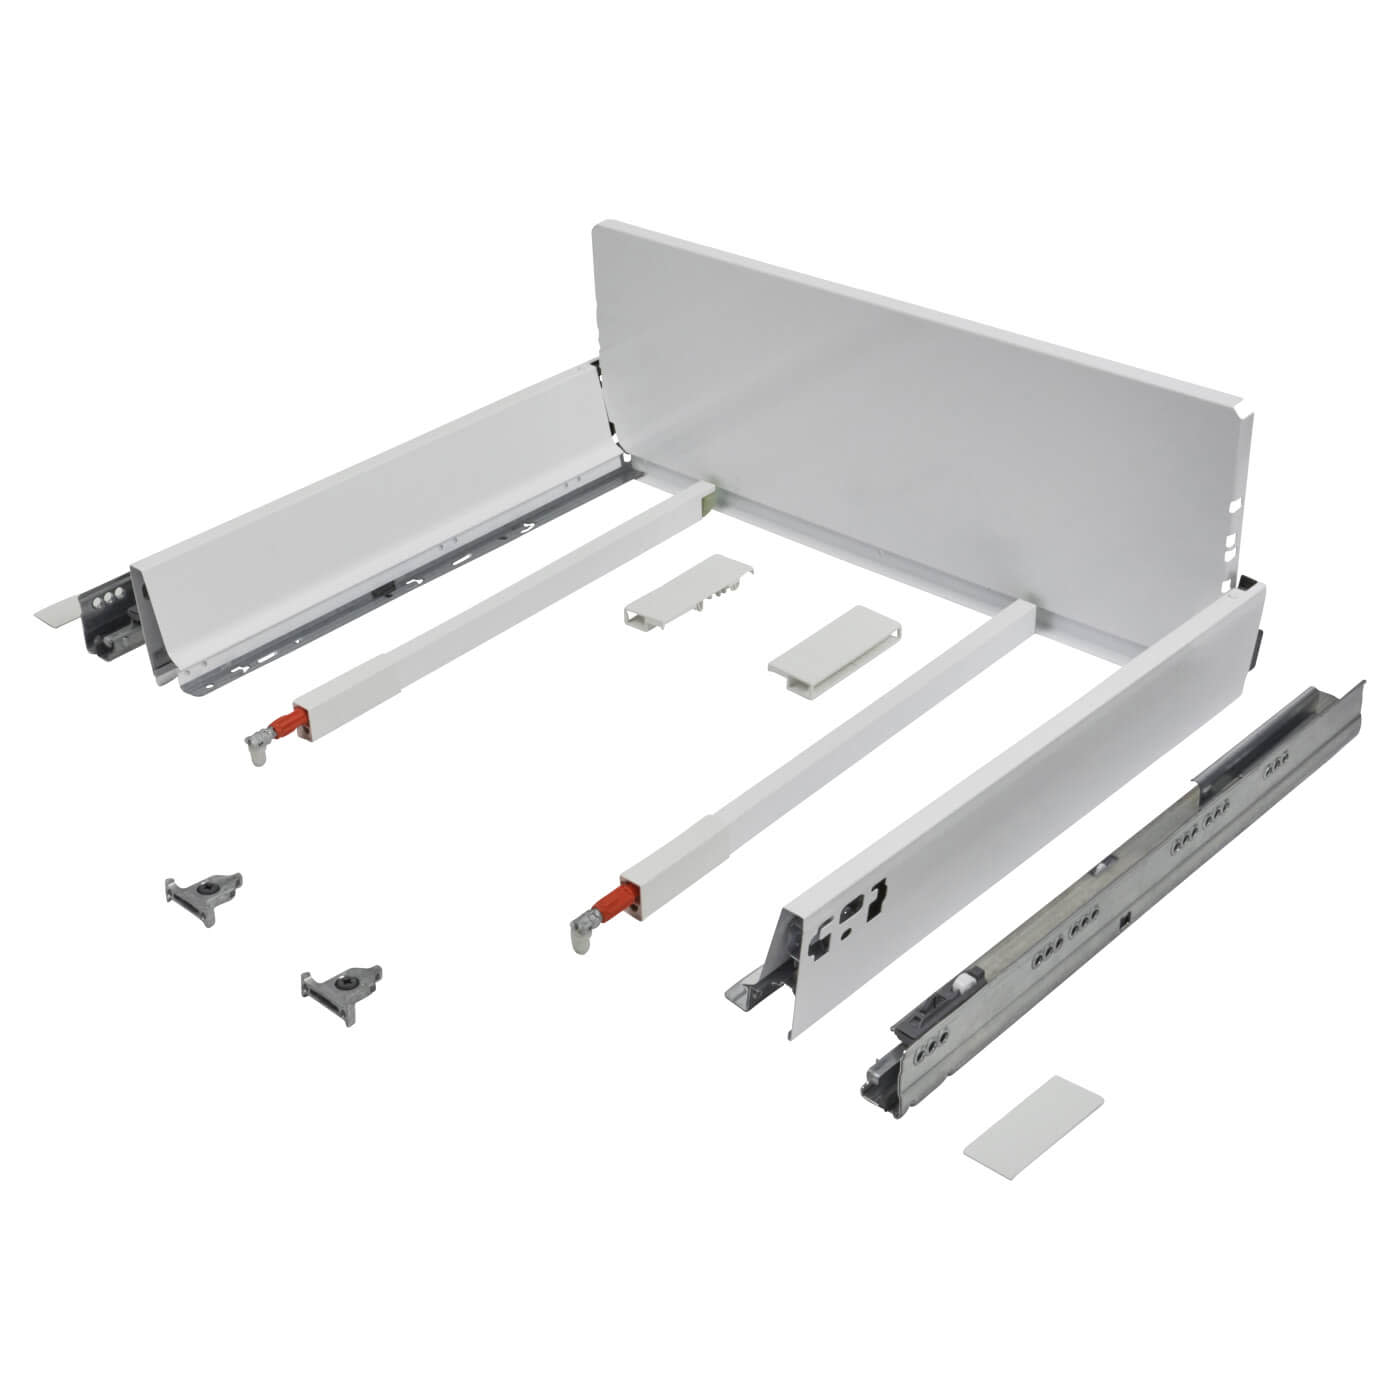 Blum TANDEMBOX ANTARO Pan Drawer - BLUMOTION Soft Close - (H) 203mm x (D) 450mm x (W) 600mm - White)